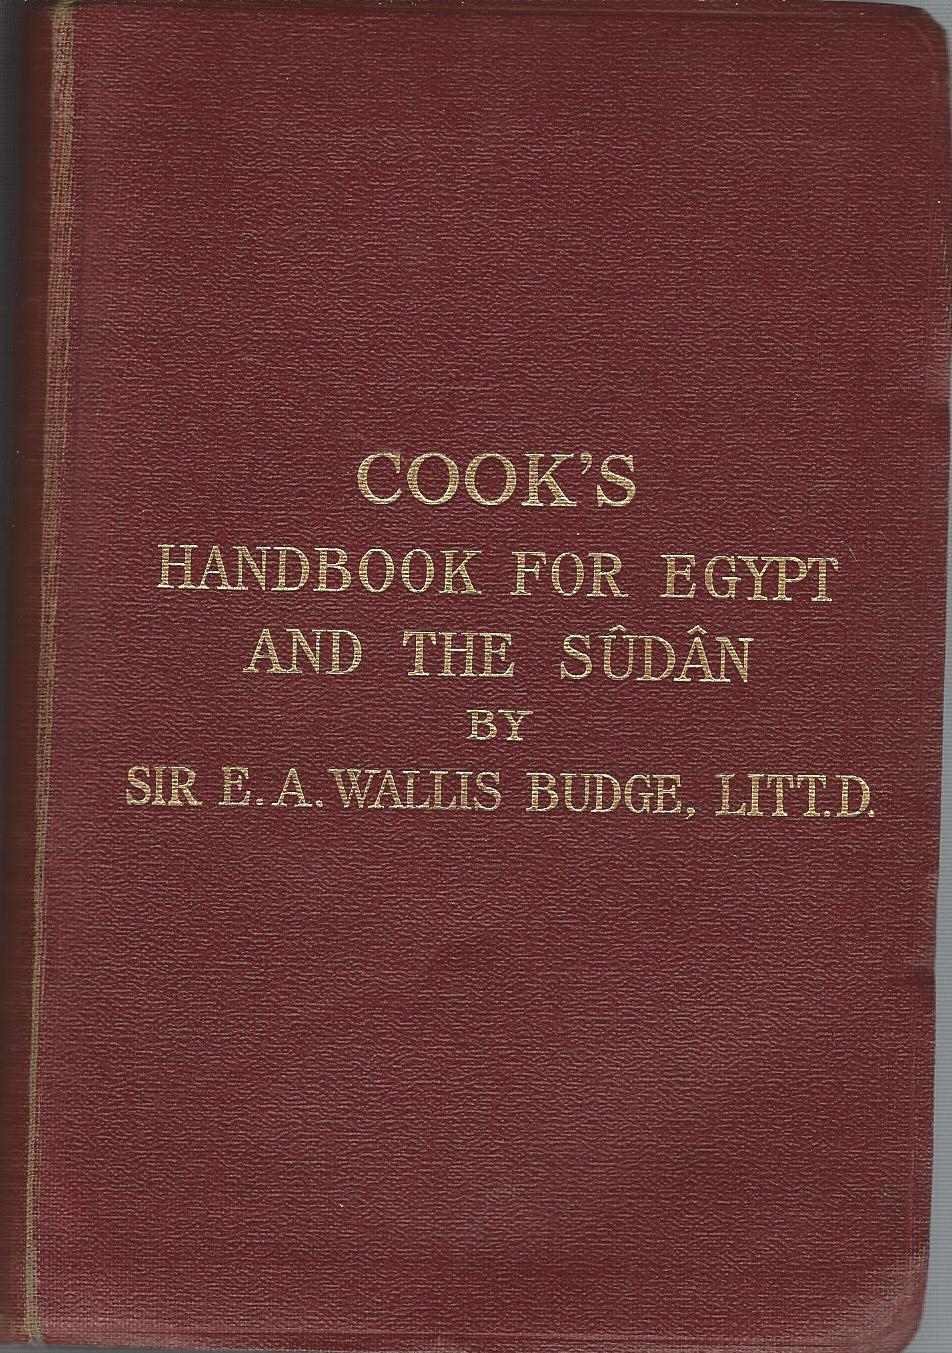 Image for The Traveller's Handbook for Egypt and the Sudan (Cook's).